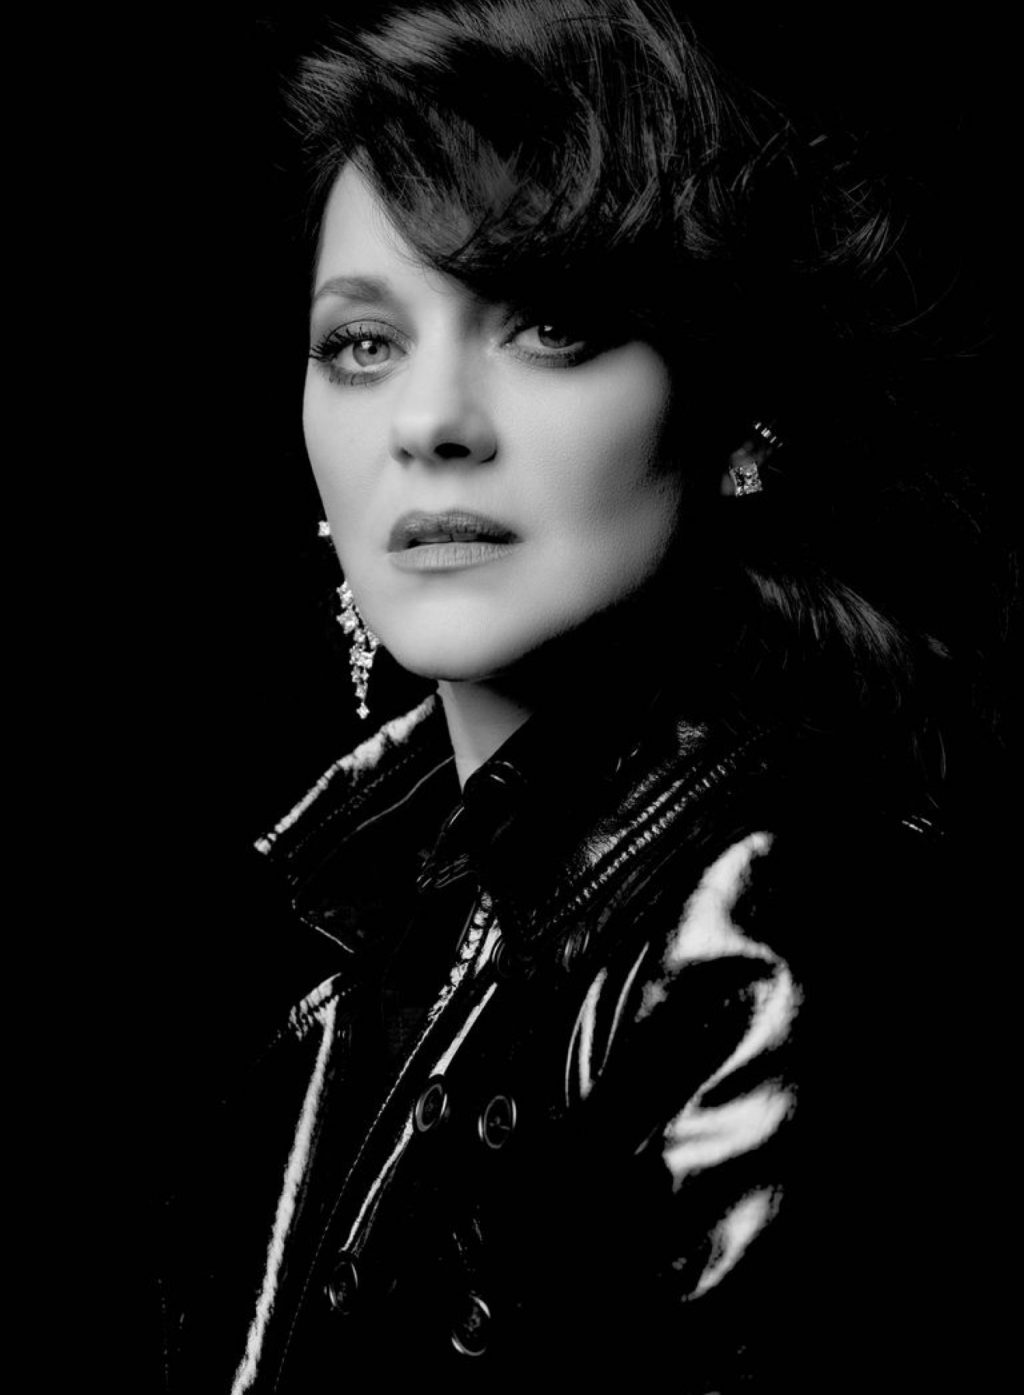 Marion Cotillard stars in Chopard Ice Cube jewelry campaign.